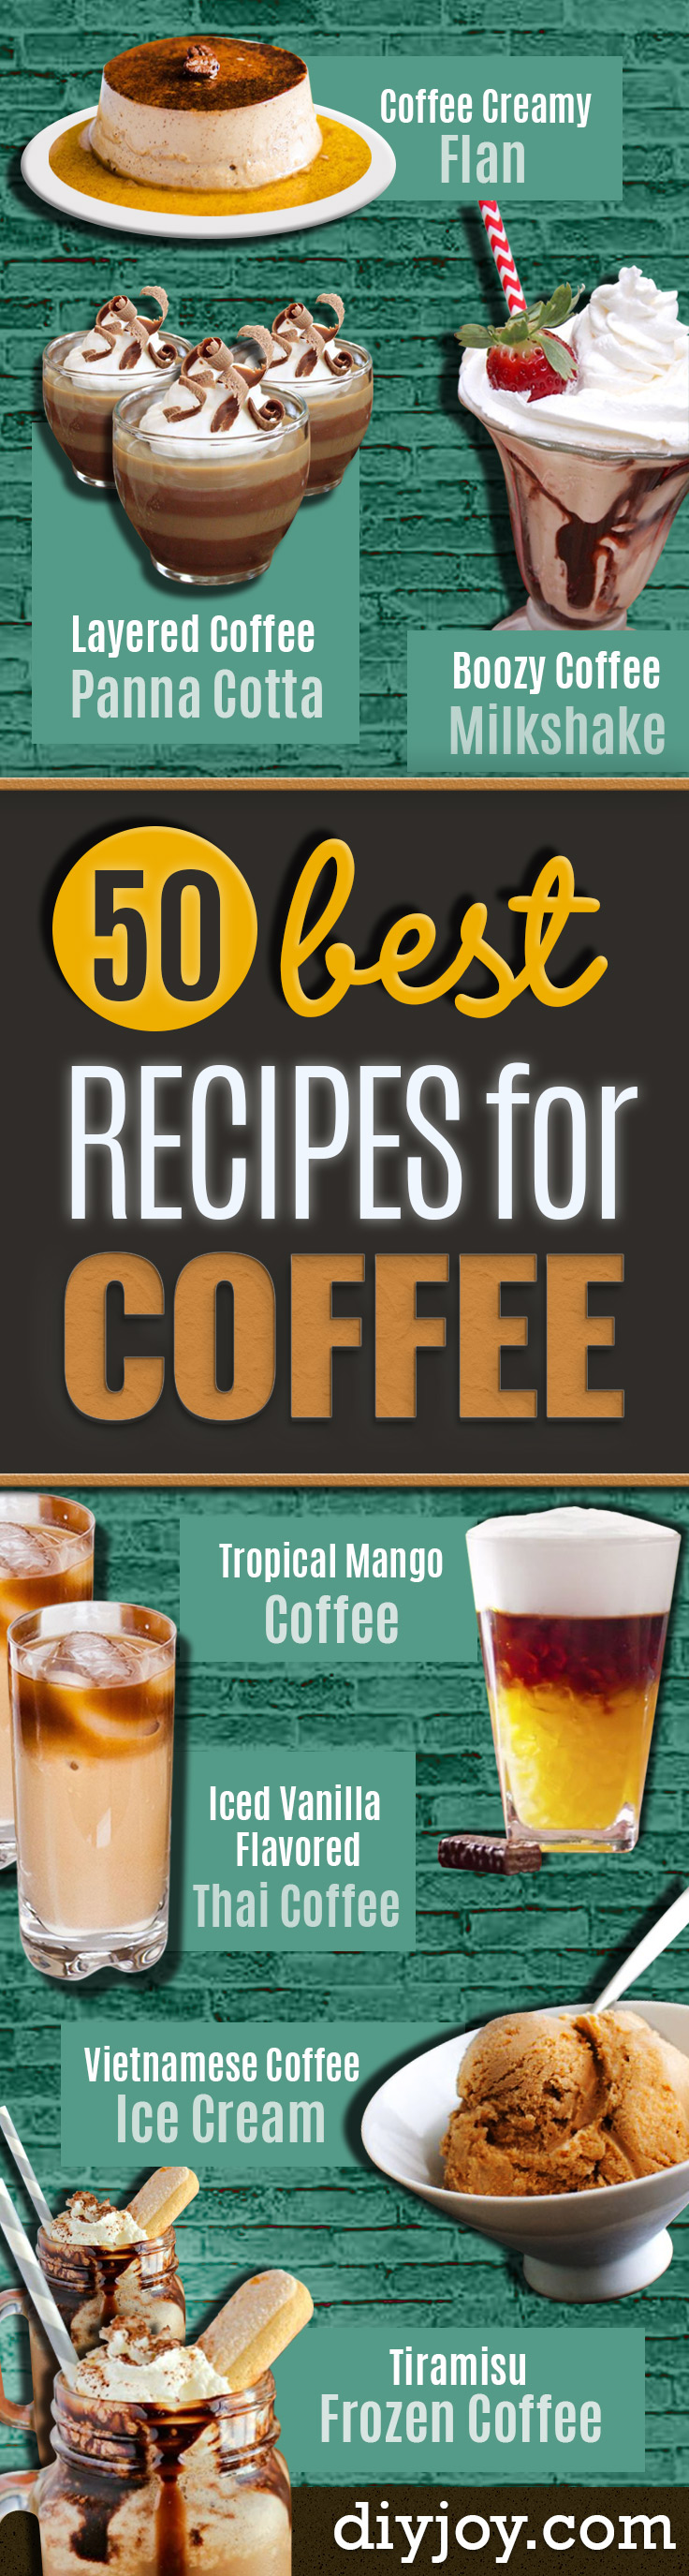 Coffee Drink Recipes - Easy Drinks and Coffees To Make At Home - Frozen, Iced, Cold Brew and Hot Coffee Recipe Ideas - Sugar Free, Low Fat and Blended Drinks - Mocha, Frappucino, Caramel, Chocolate, Latte and Americano - Flavored Coffee, Liqueur and After Dinner Drinks With Alcohol, Dessert Ideas for Parties http://diyjoy.com/coffee-drink-recipes